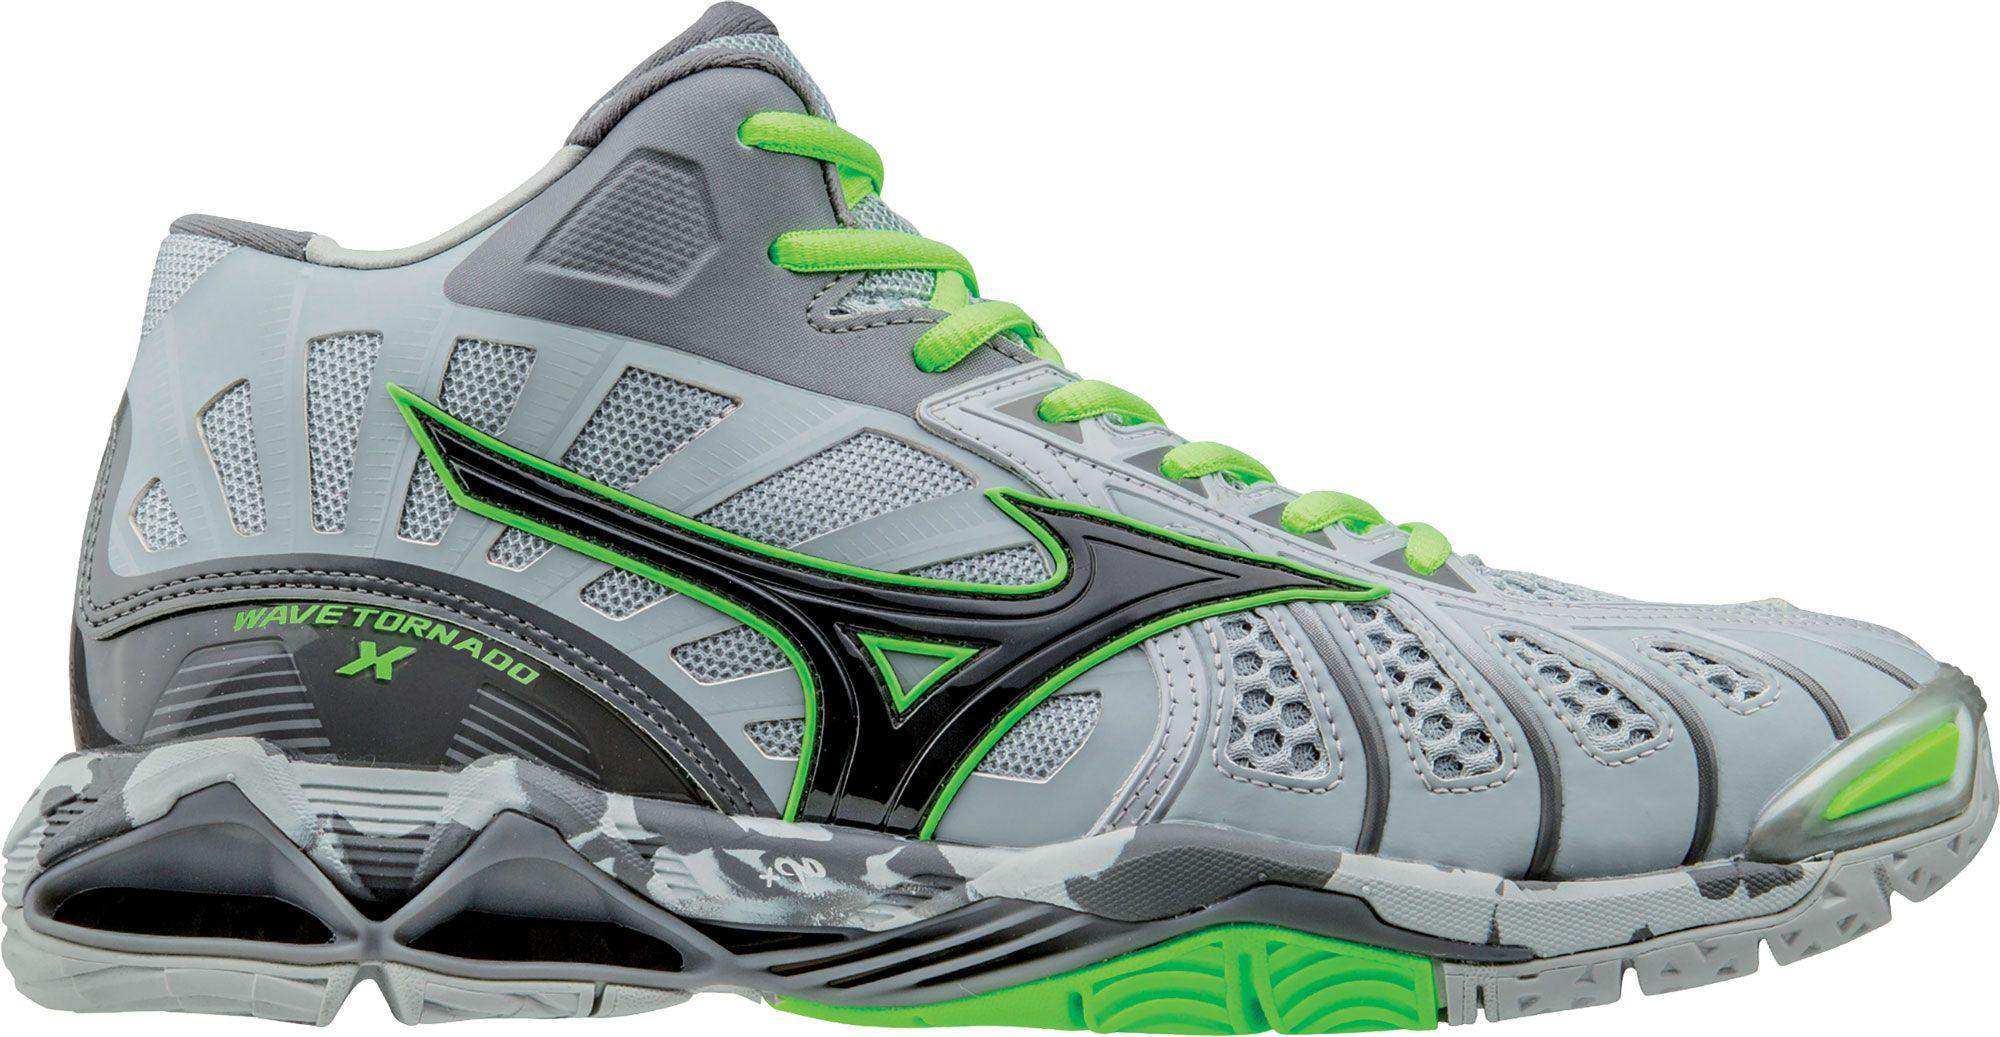 64d3a45840797 Lyst - Mizuno Wave Tornado X Mid Volleyball Shoes in Green for Men